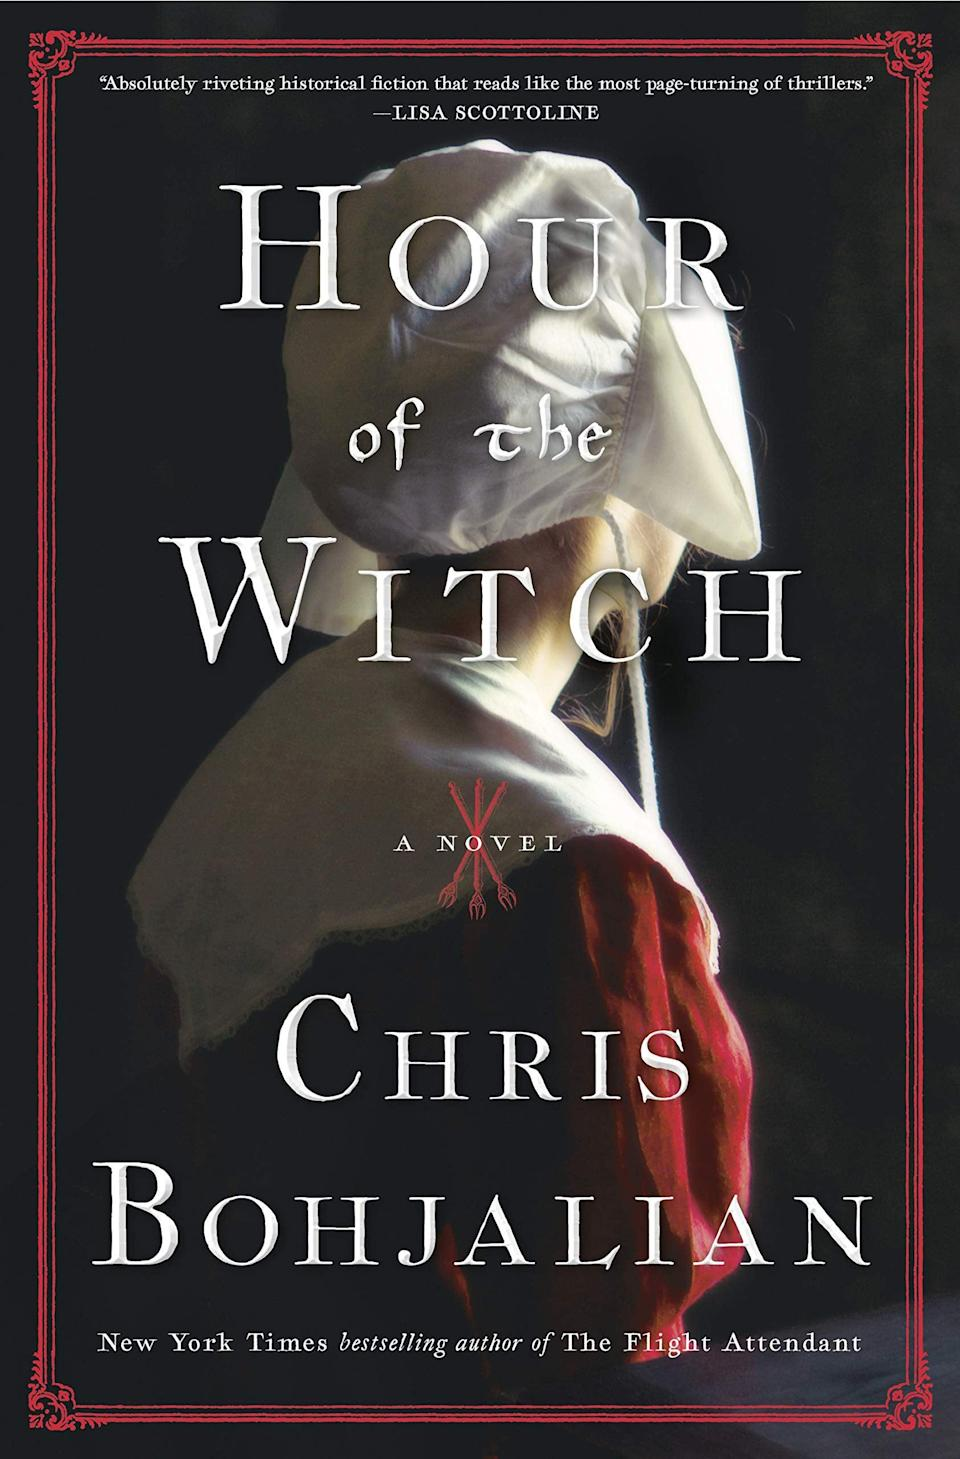 <p>Chris Bohjalian's latest thriller is a nail-biting historical novel about a woman whose quest for a divorce in 1662 Boston might just end with her being branded a witch. In <span><strong>Hour of the Witch</strong></span>, 24-year-old Mary Deerfield is desperate to escape her violent husband, Thomas. But in the New World, where every woman is under suspicion of being a witch, her desire to escape her marriage may end up sending her to the gallows if she isn't careful. </p> <p><em>Out May 4</em></p>